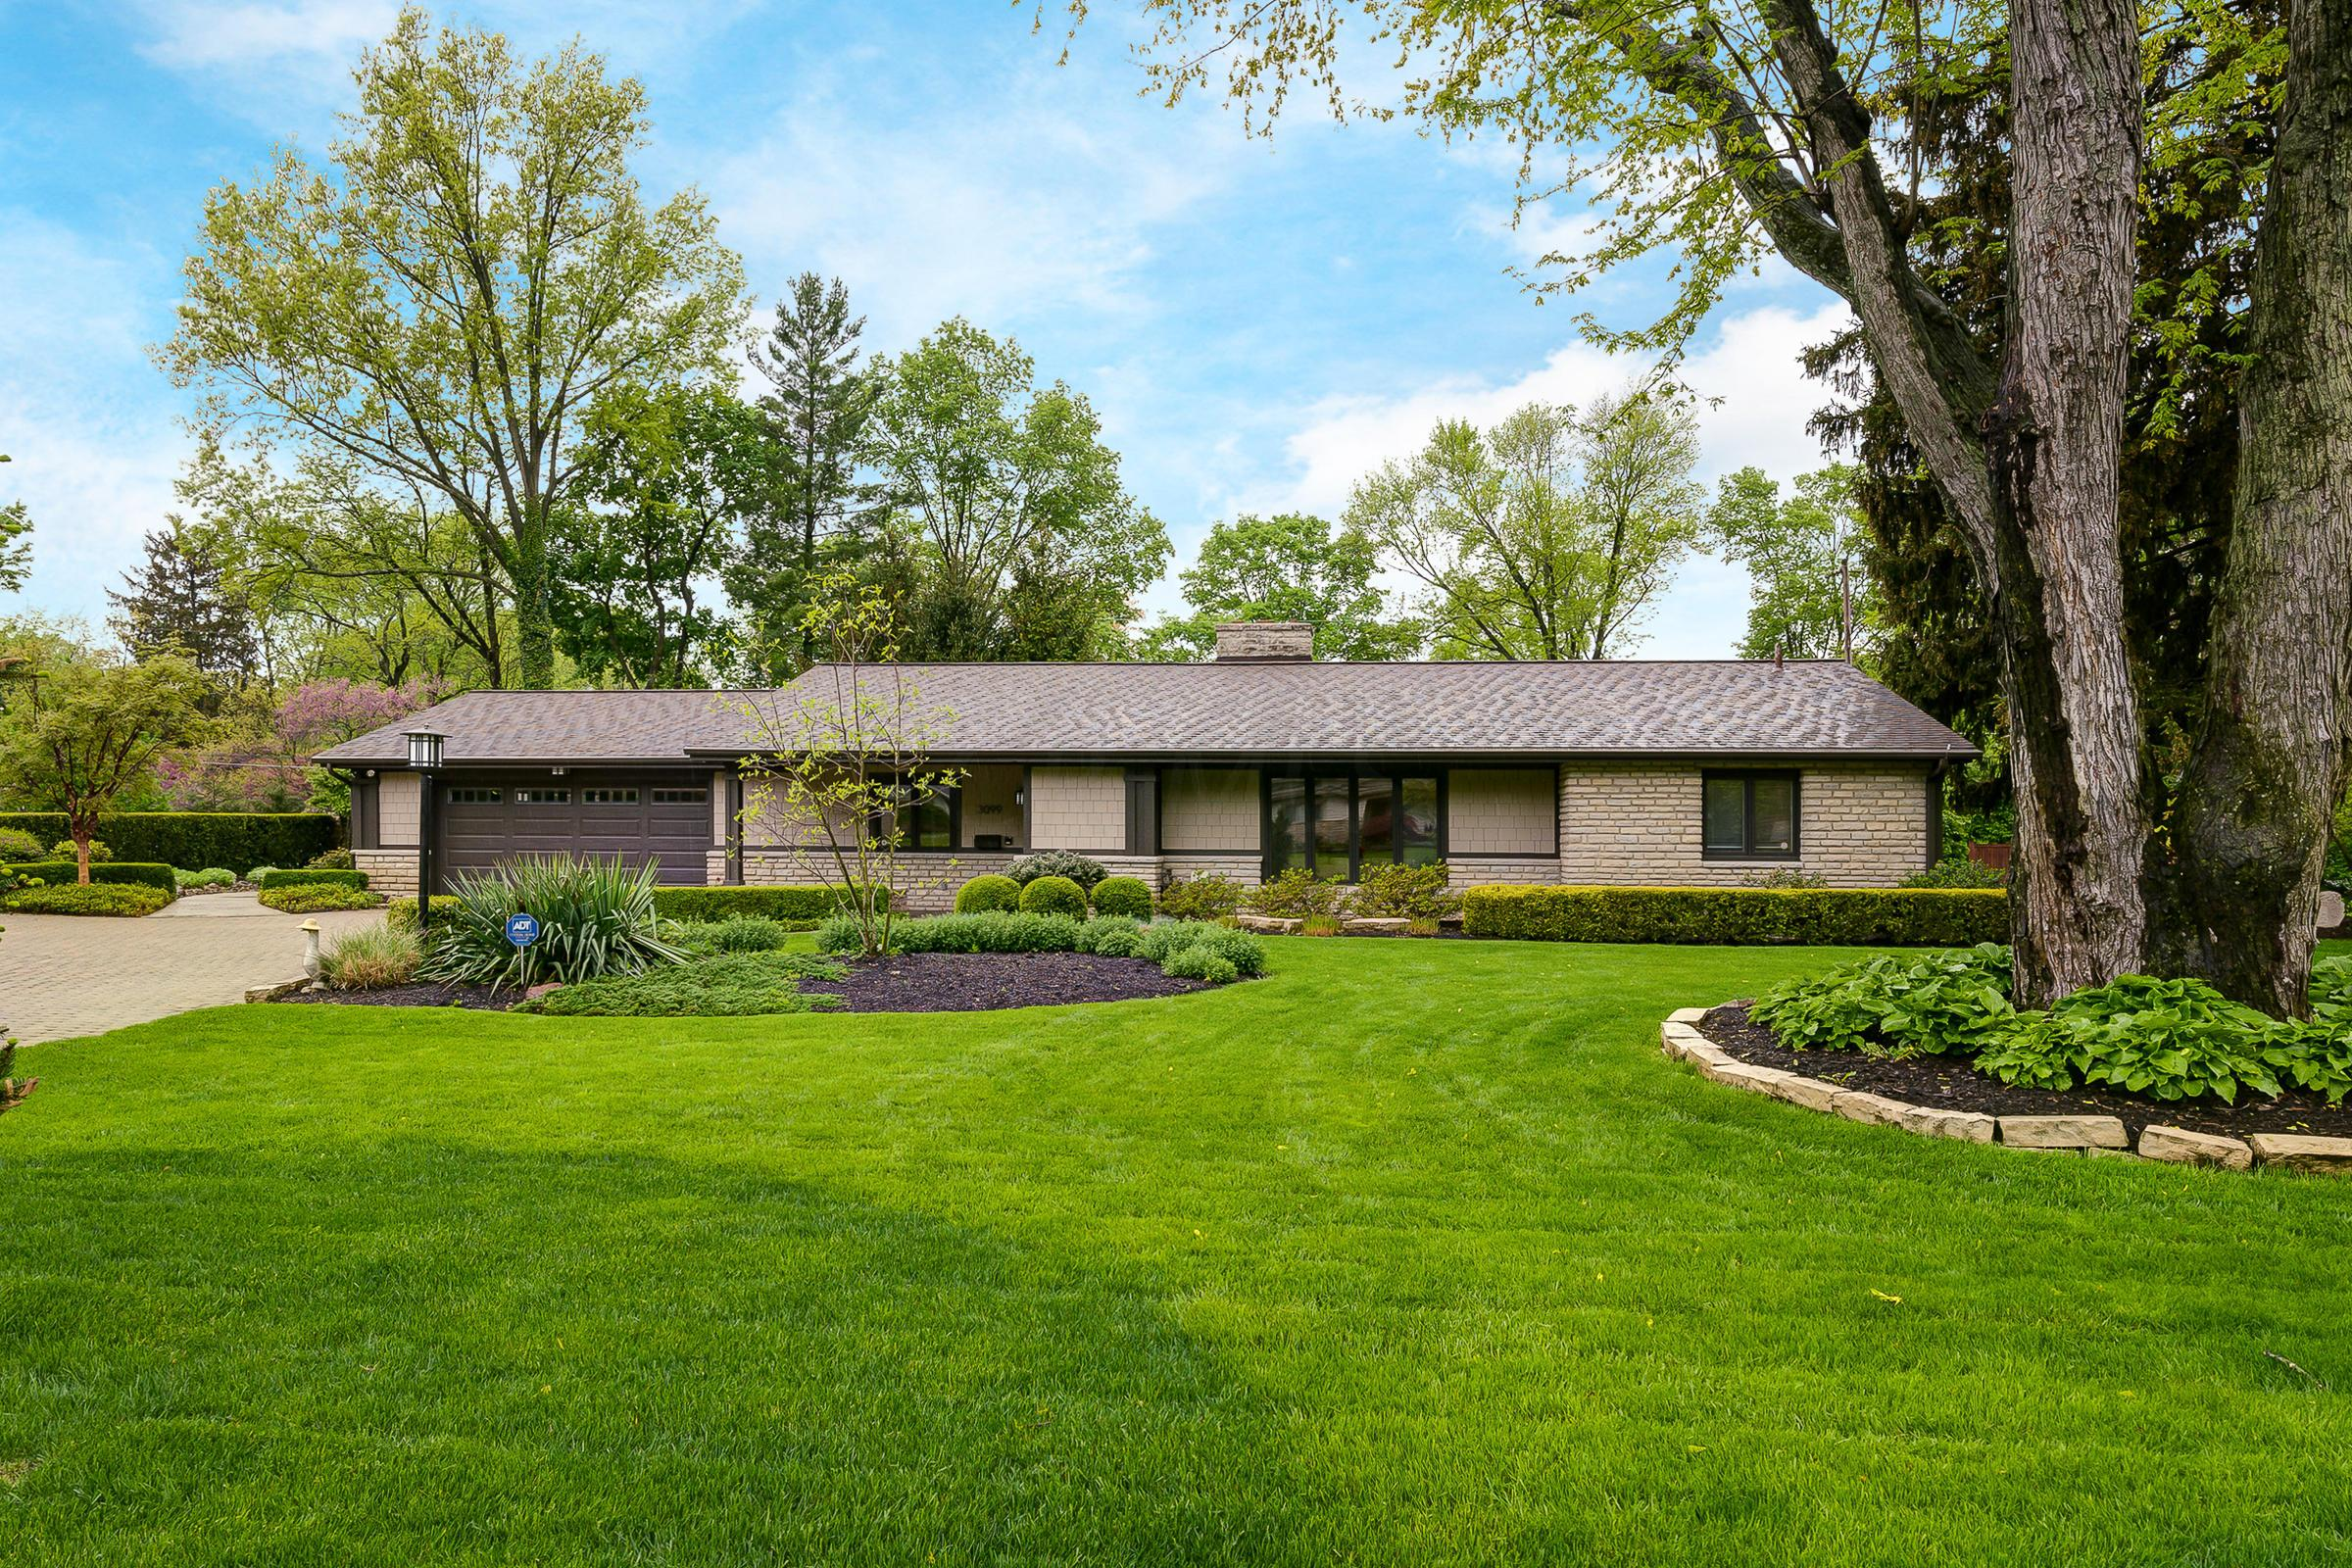 Photo of 3099 Dorchester Road, Upper Arlington, OH 43221